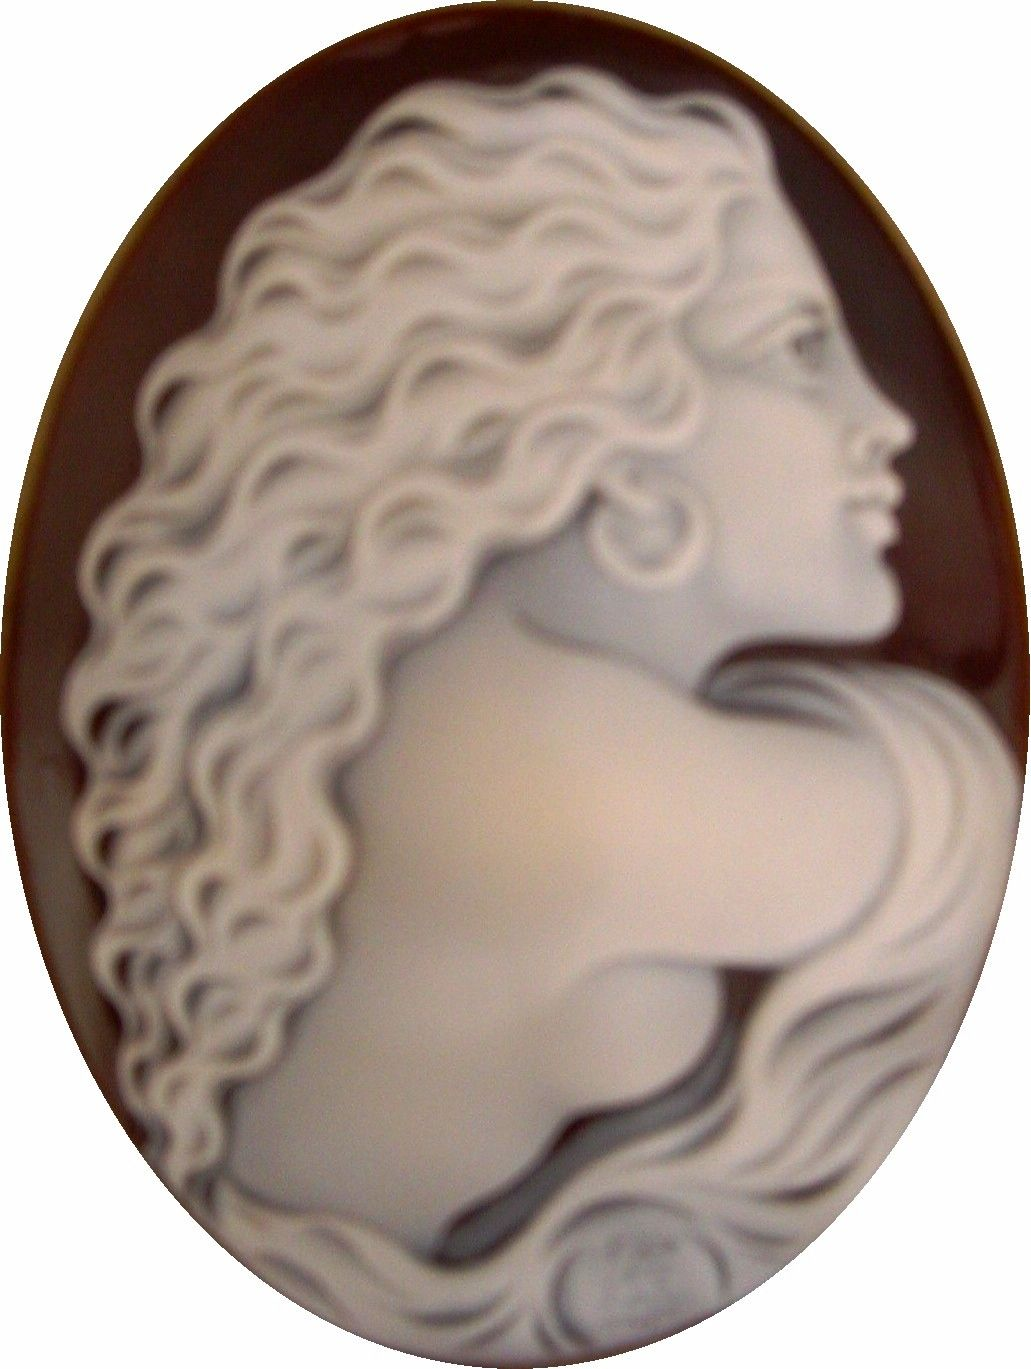 Vintage cameo jewelry 1850 the scognamiglio family have been vintage cameo jewelry 1850 the scognamiglio family have been producing luxurious cameos mozeypictures Choice Image